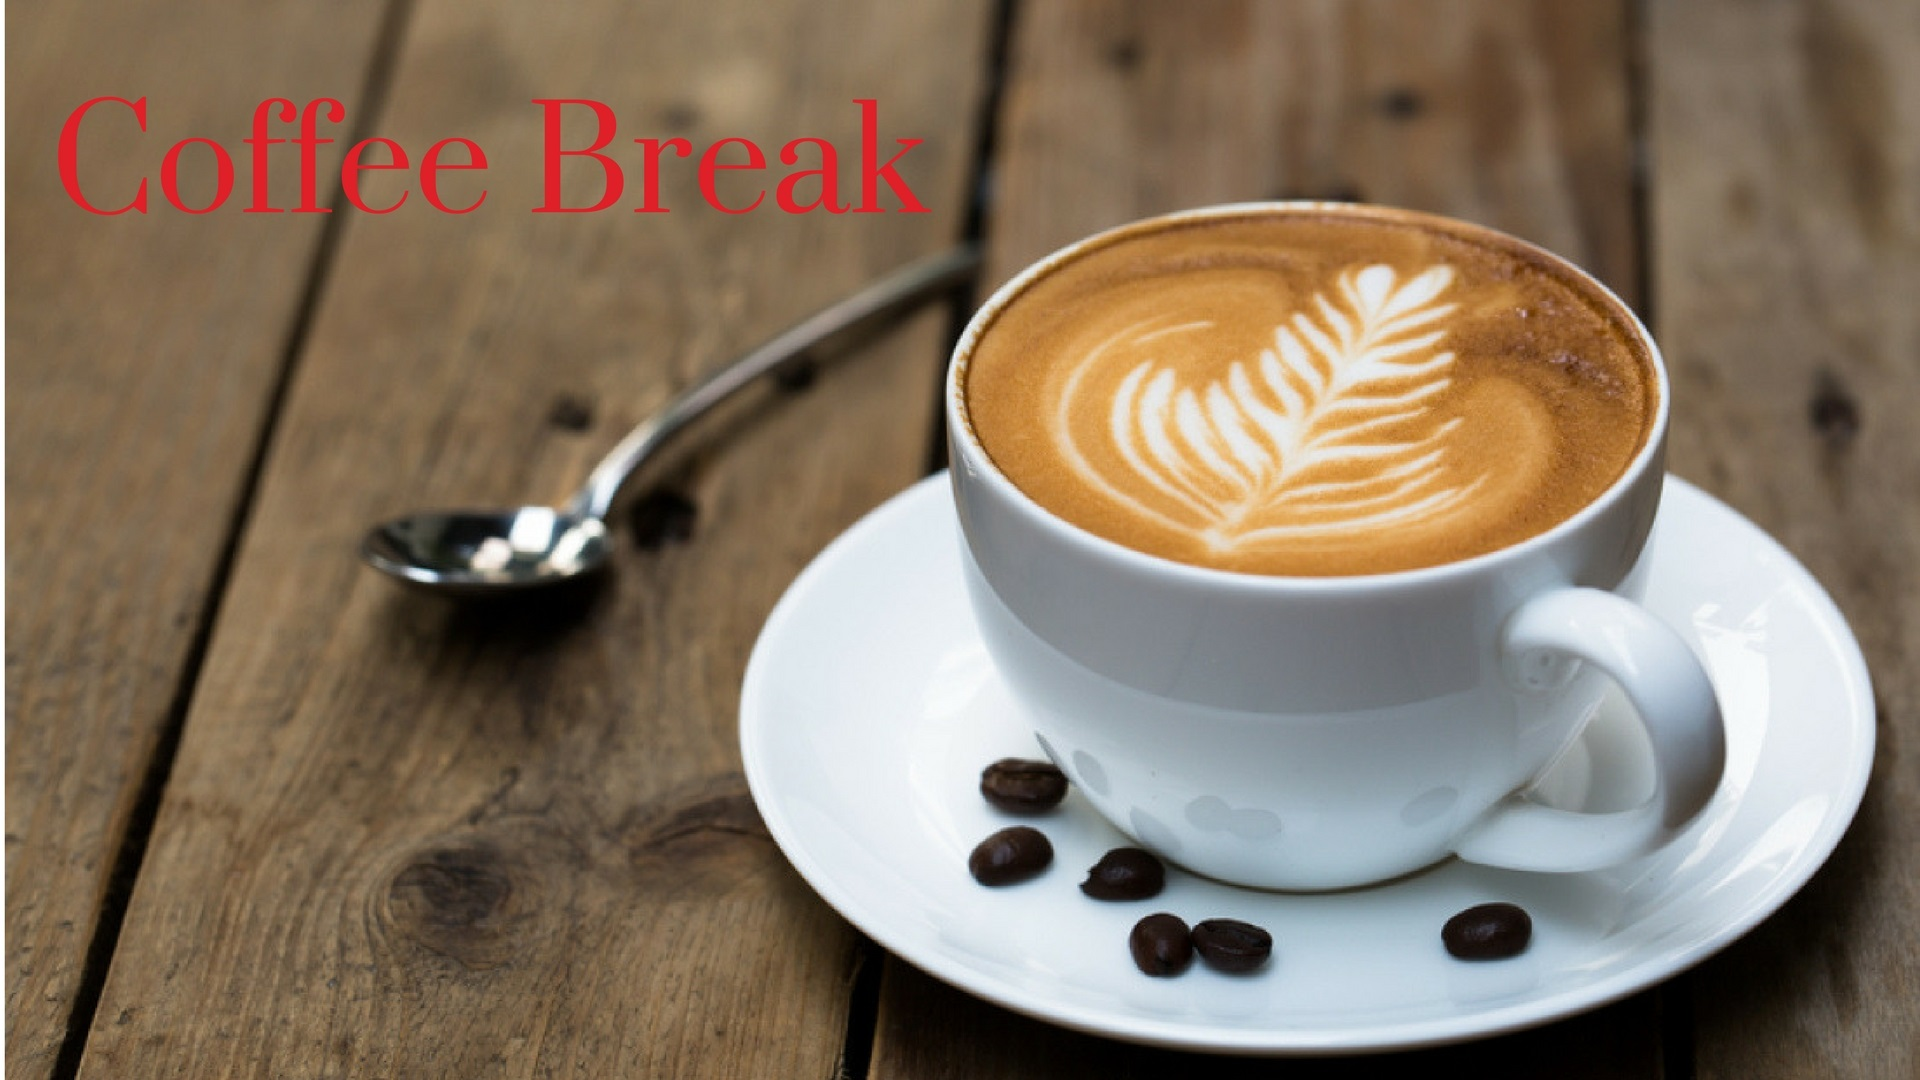 Enjoy your coffee break with A Hint of Life